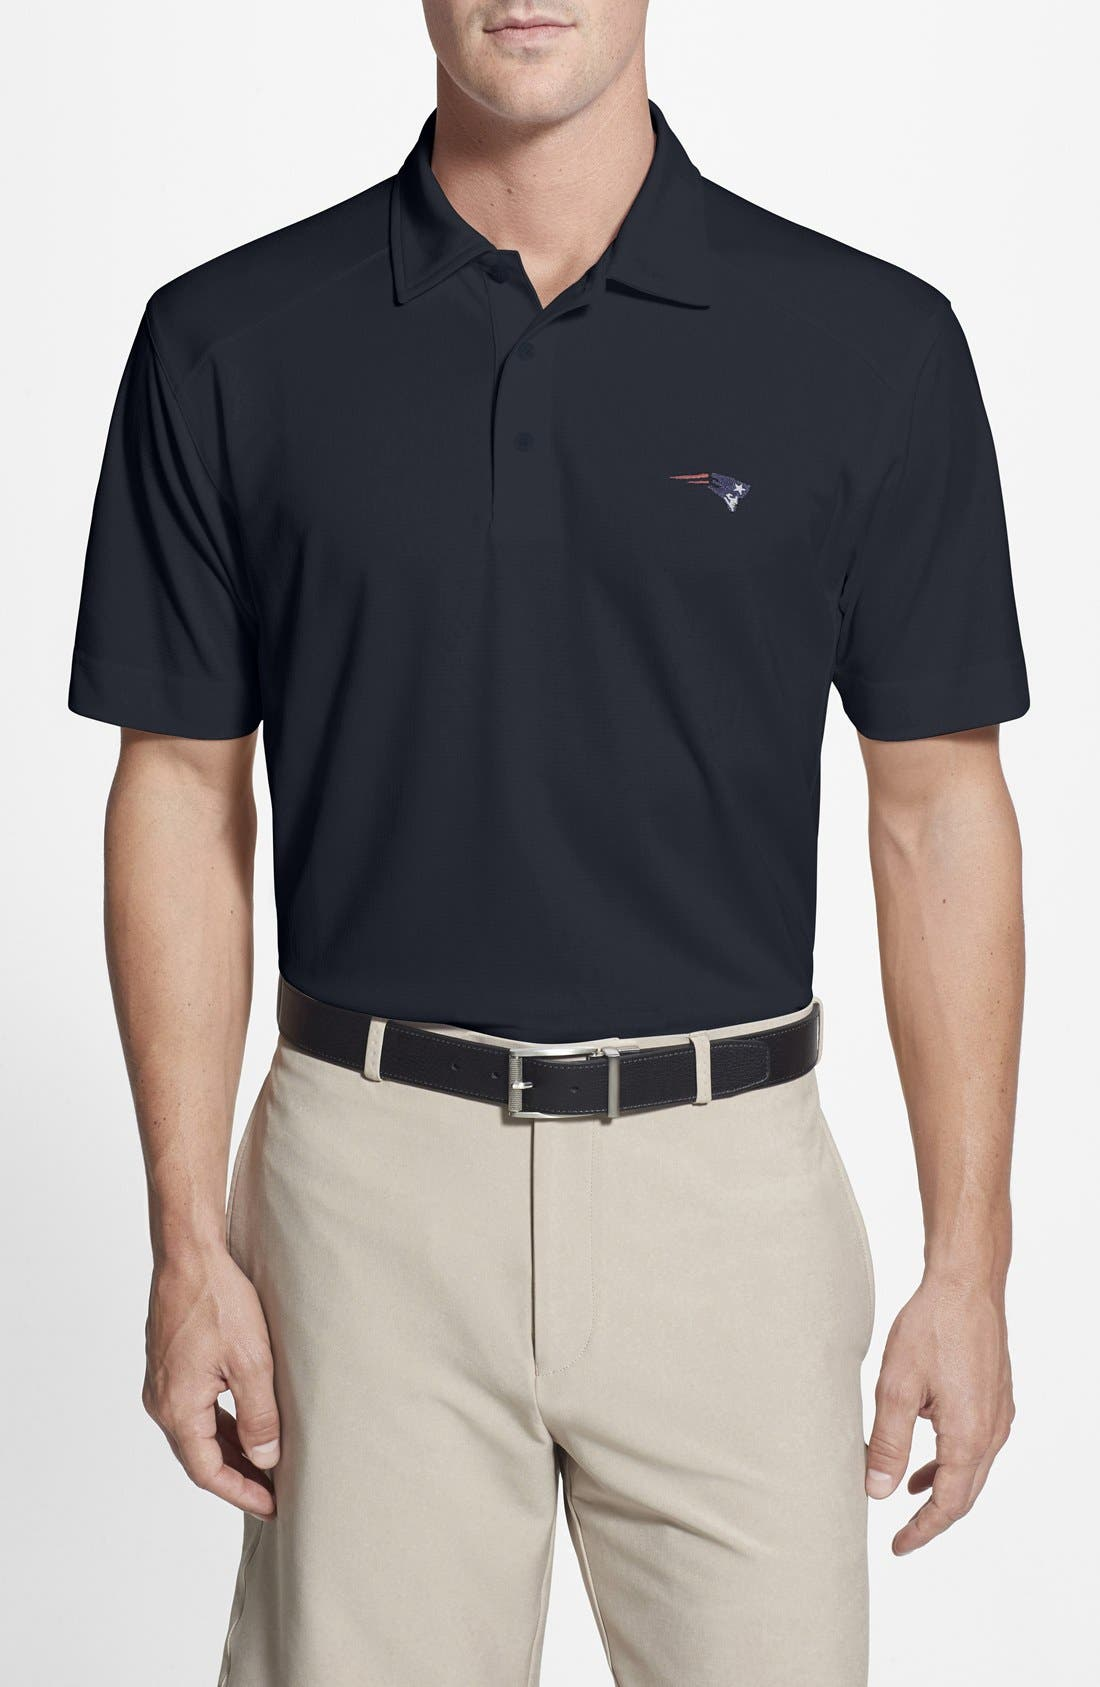 Cutter & Buck 'New England Patriots - Genre' DryTec Moisture Wicking Polo